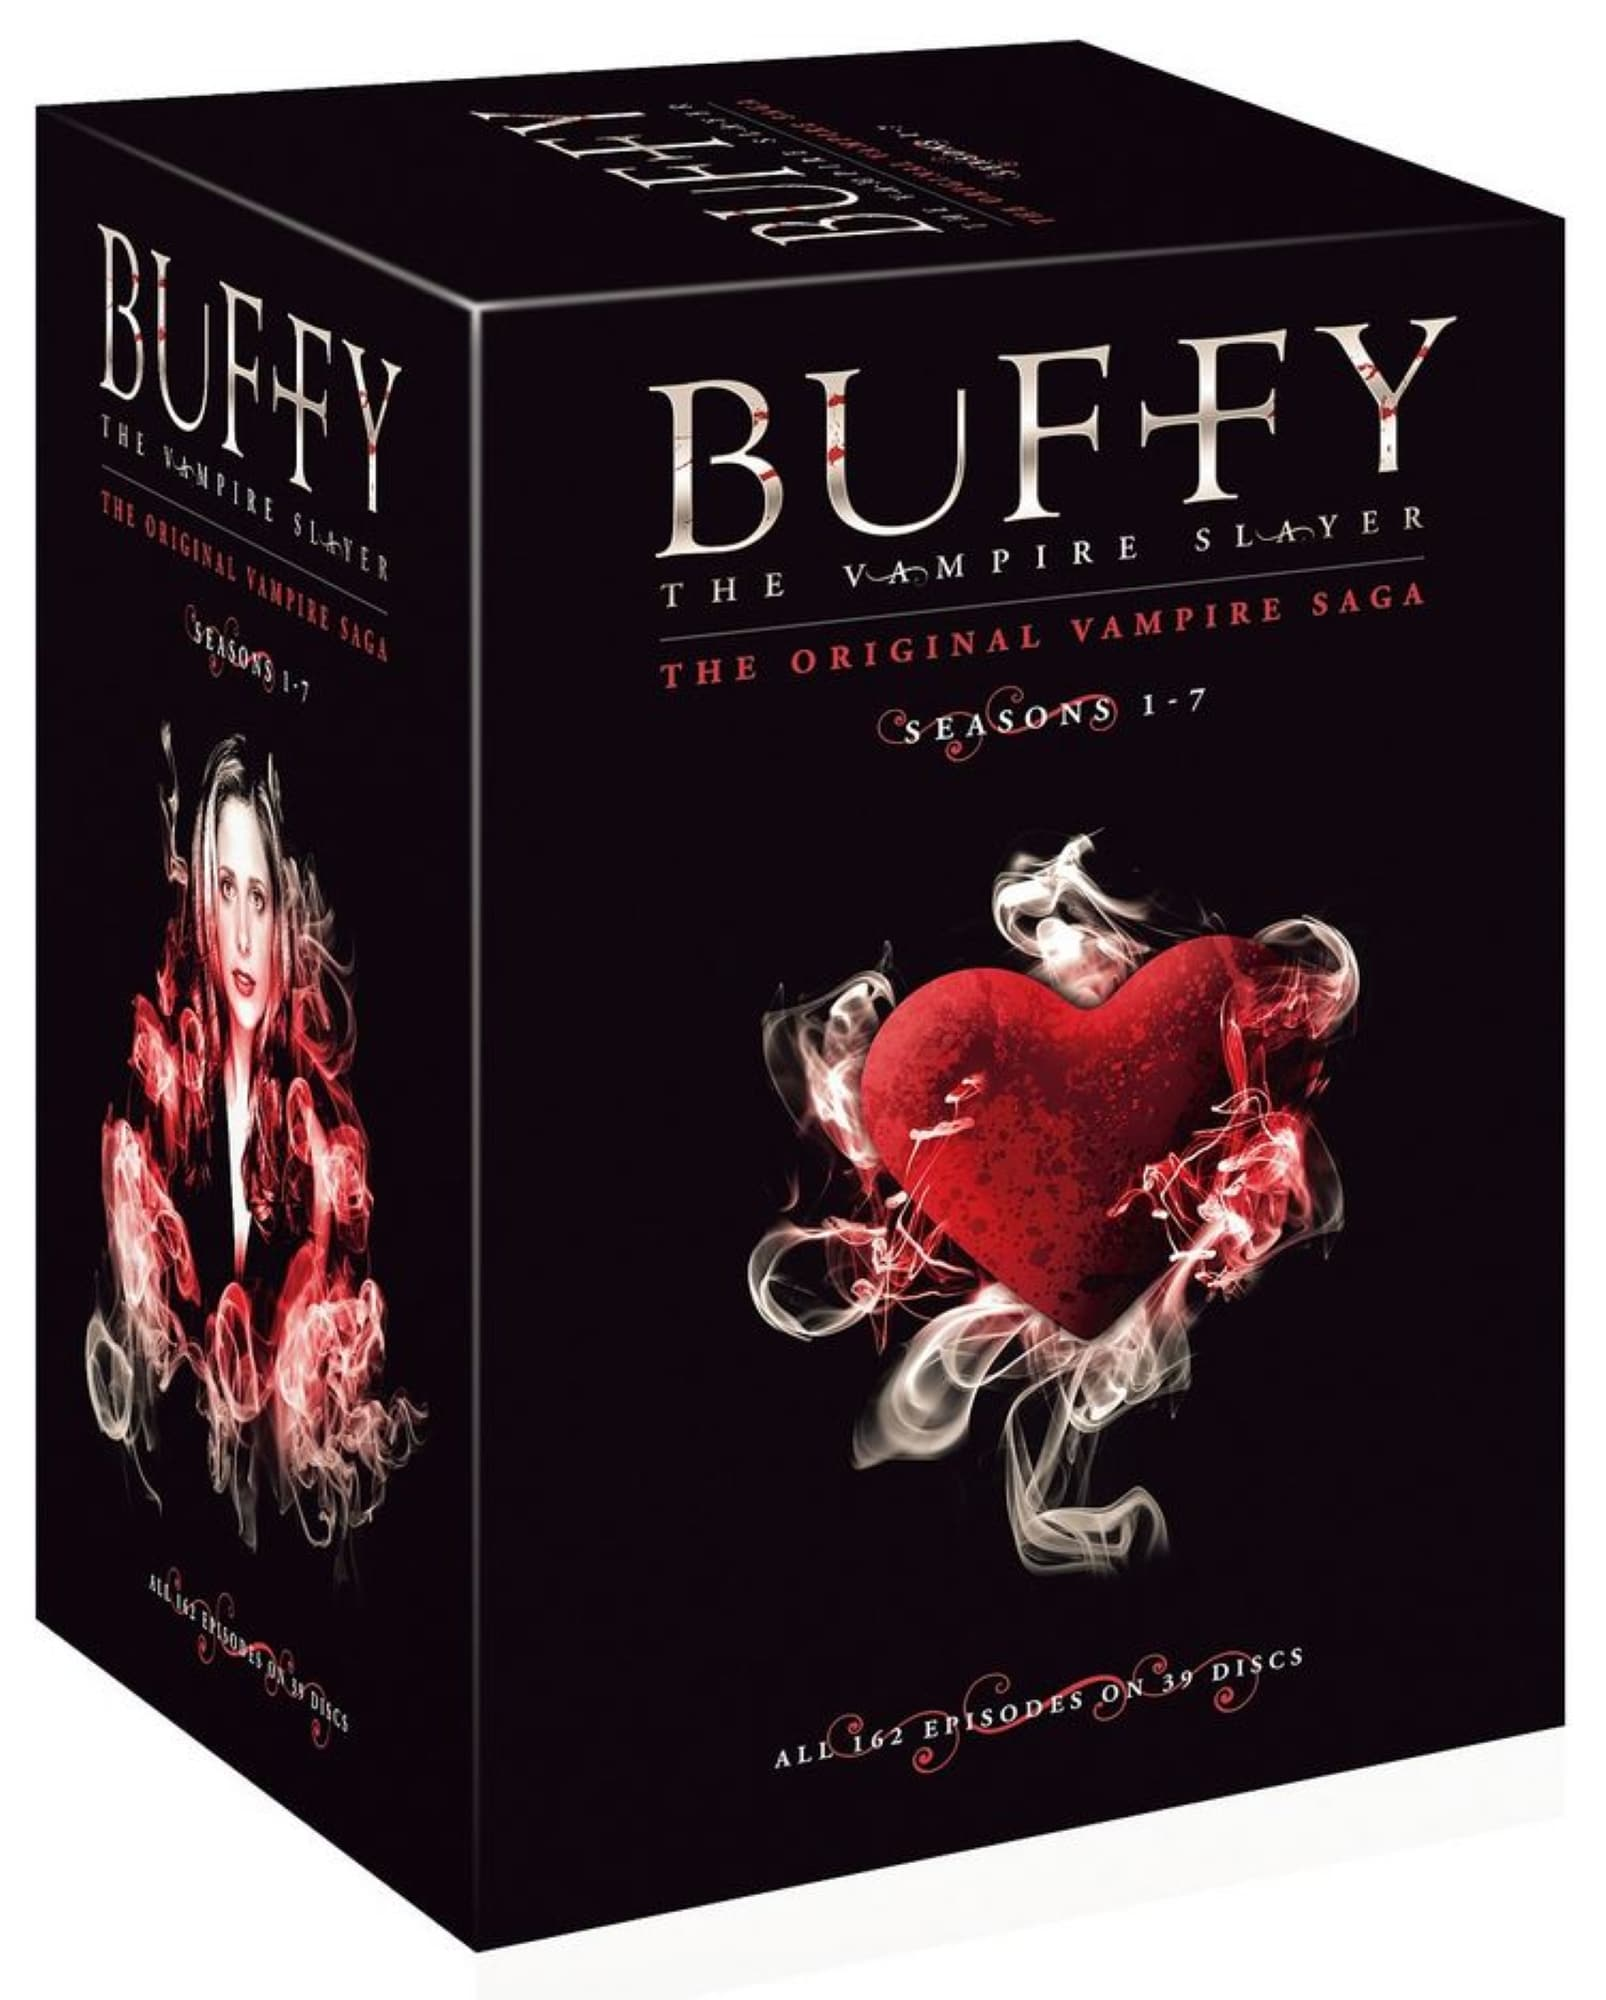 Buffy The Vampire Slayer Box - Complete series 1-7 (39 disc) - DVD